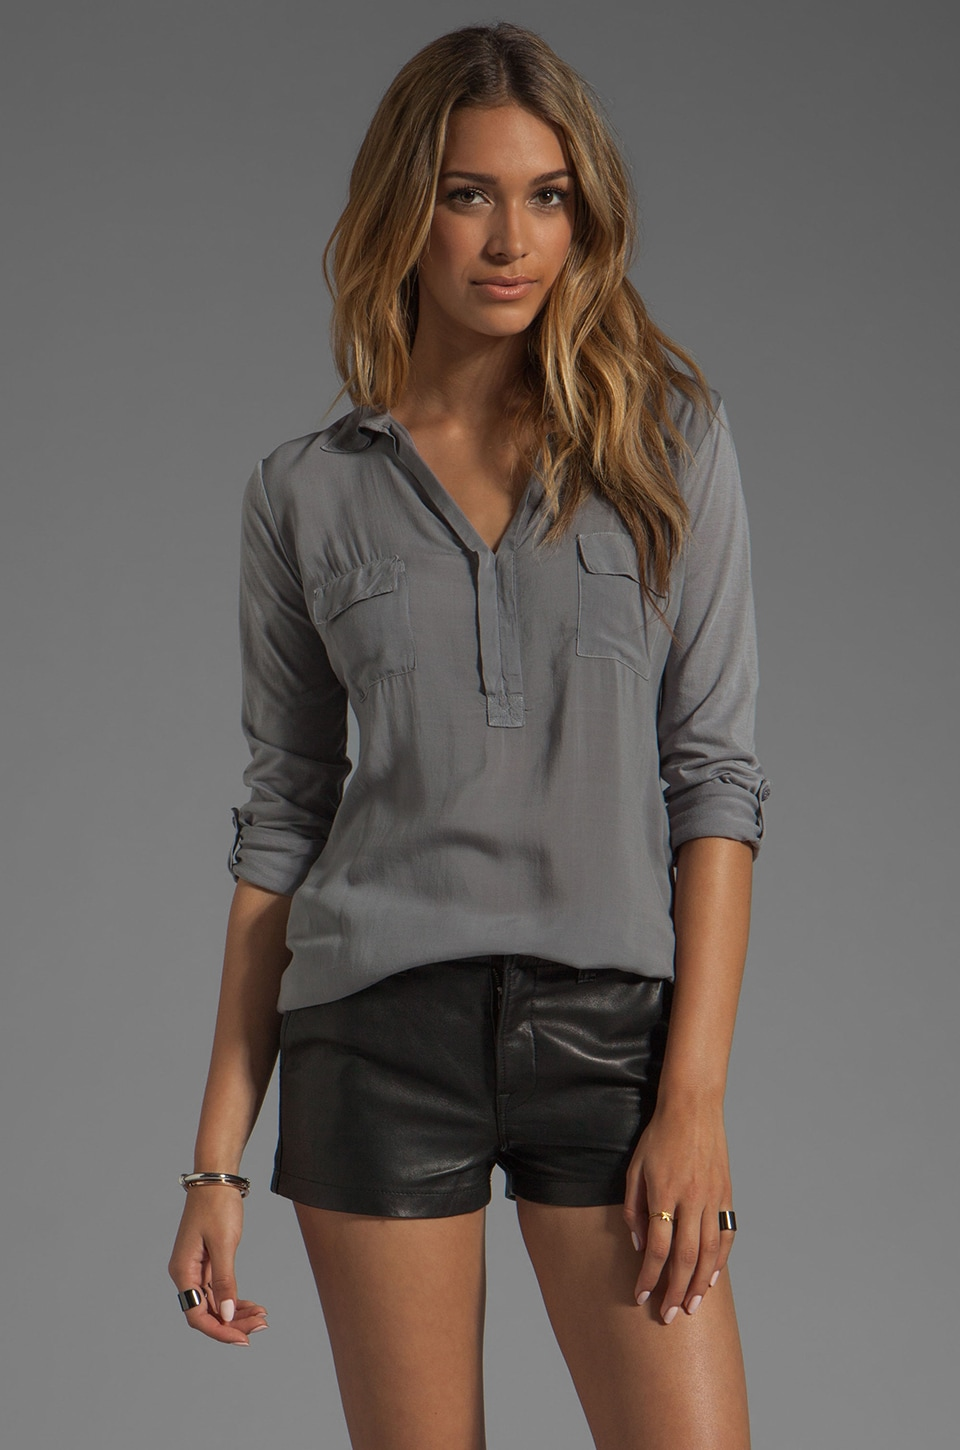 Splendid Shirting Collar Top in Storm